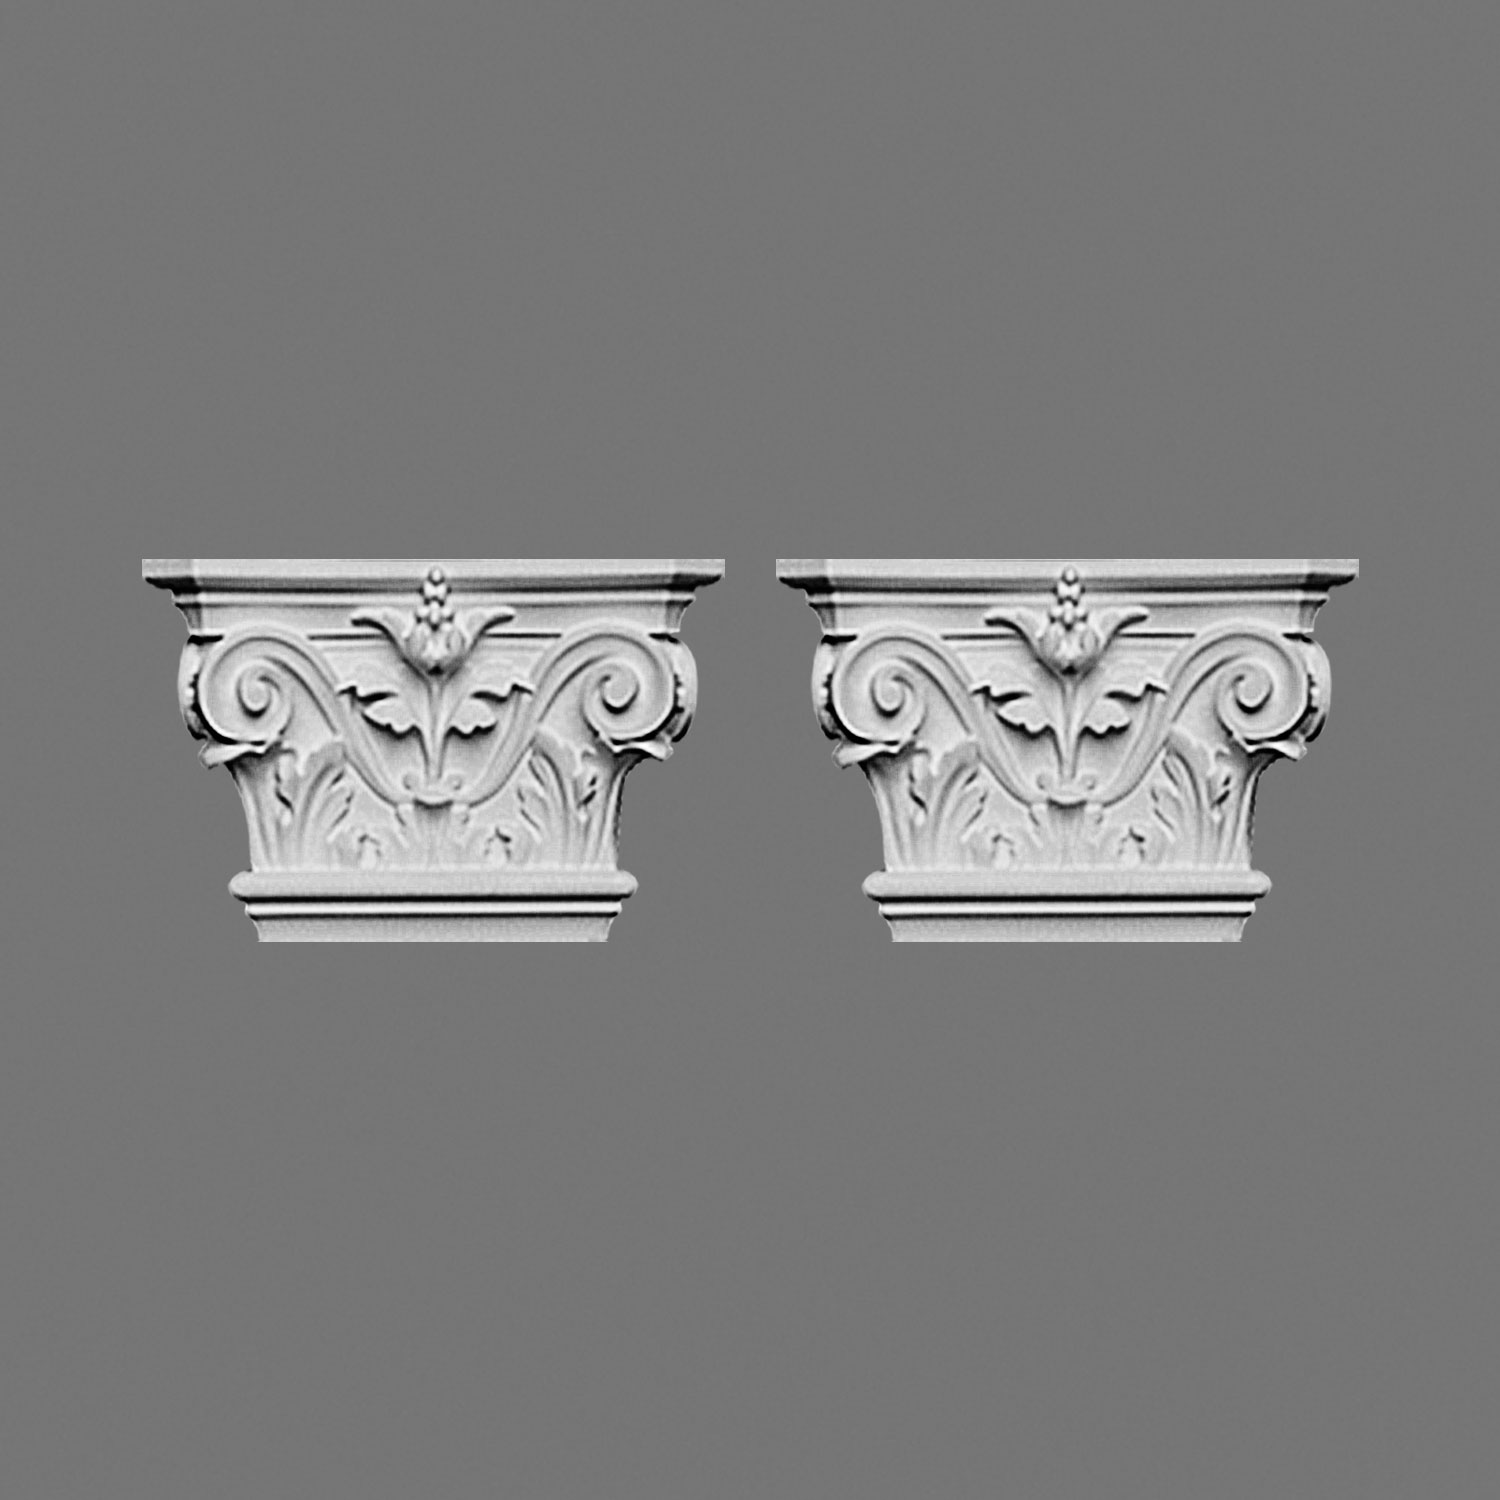 Pair of Capitals for Pilaster